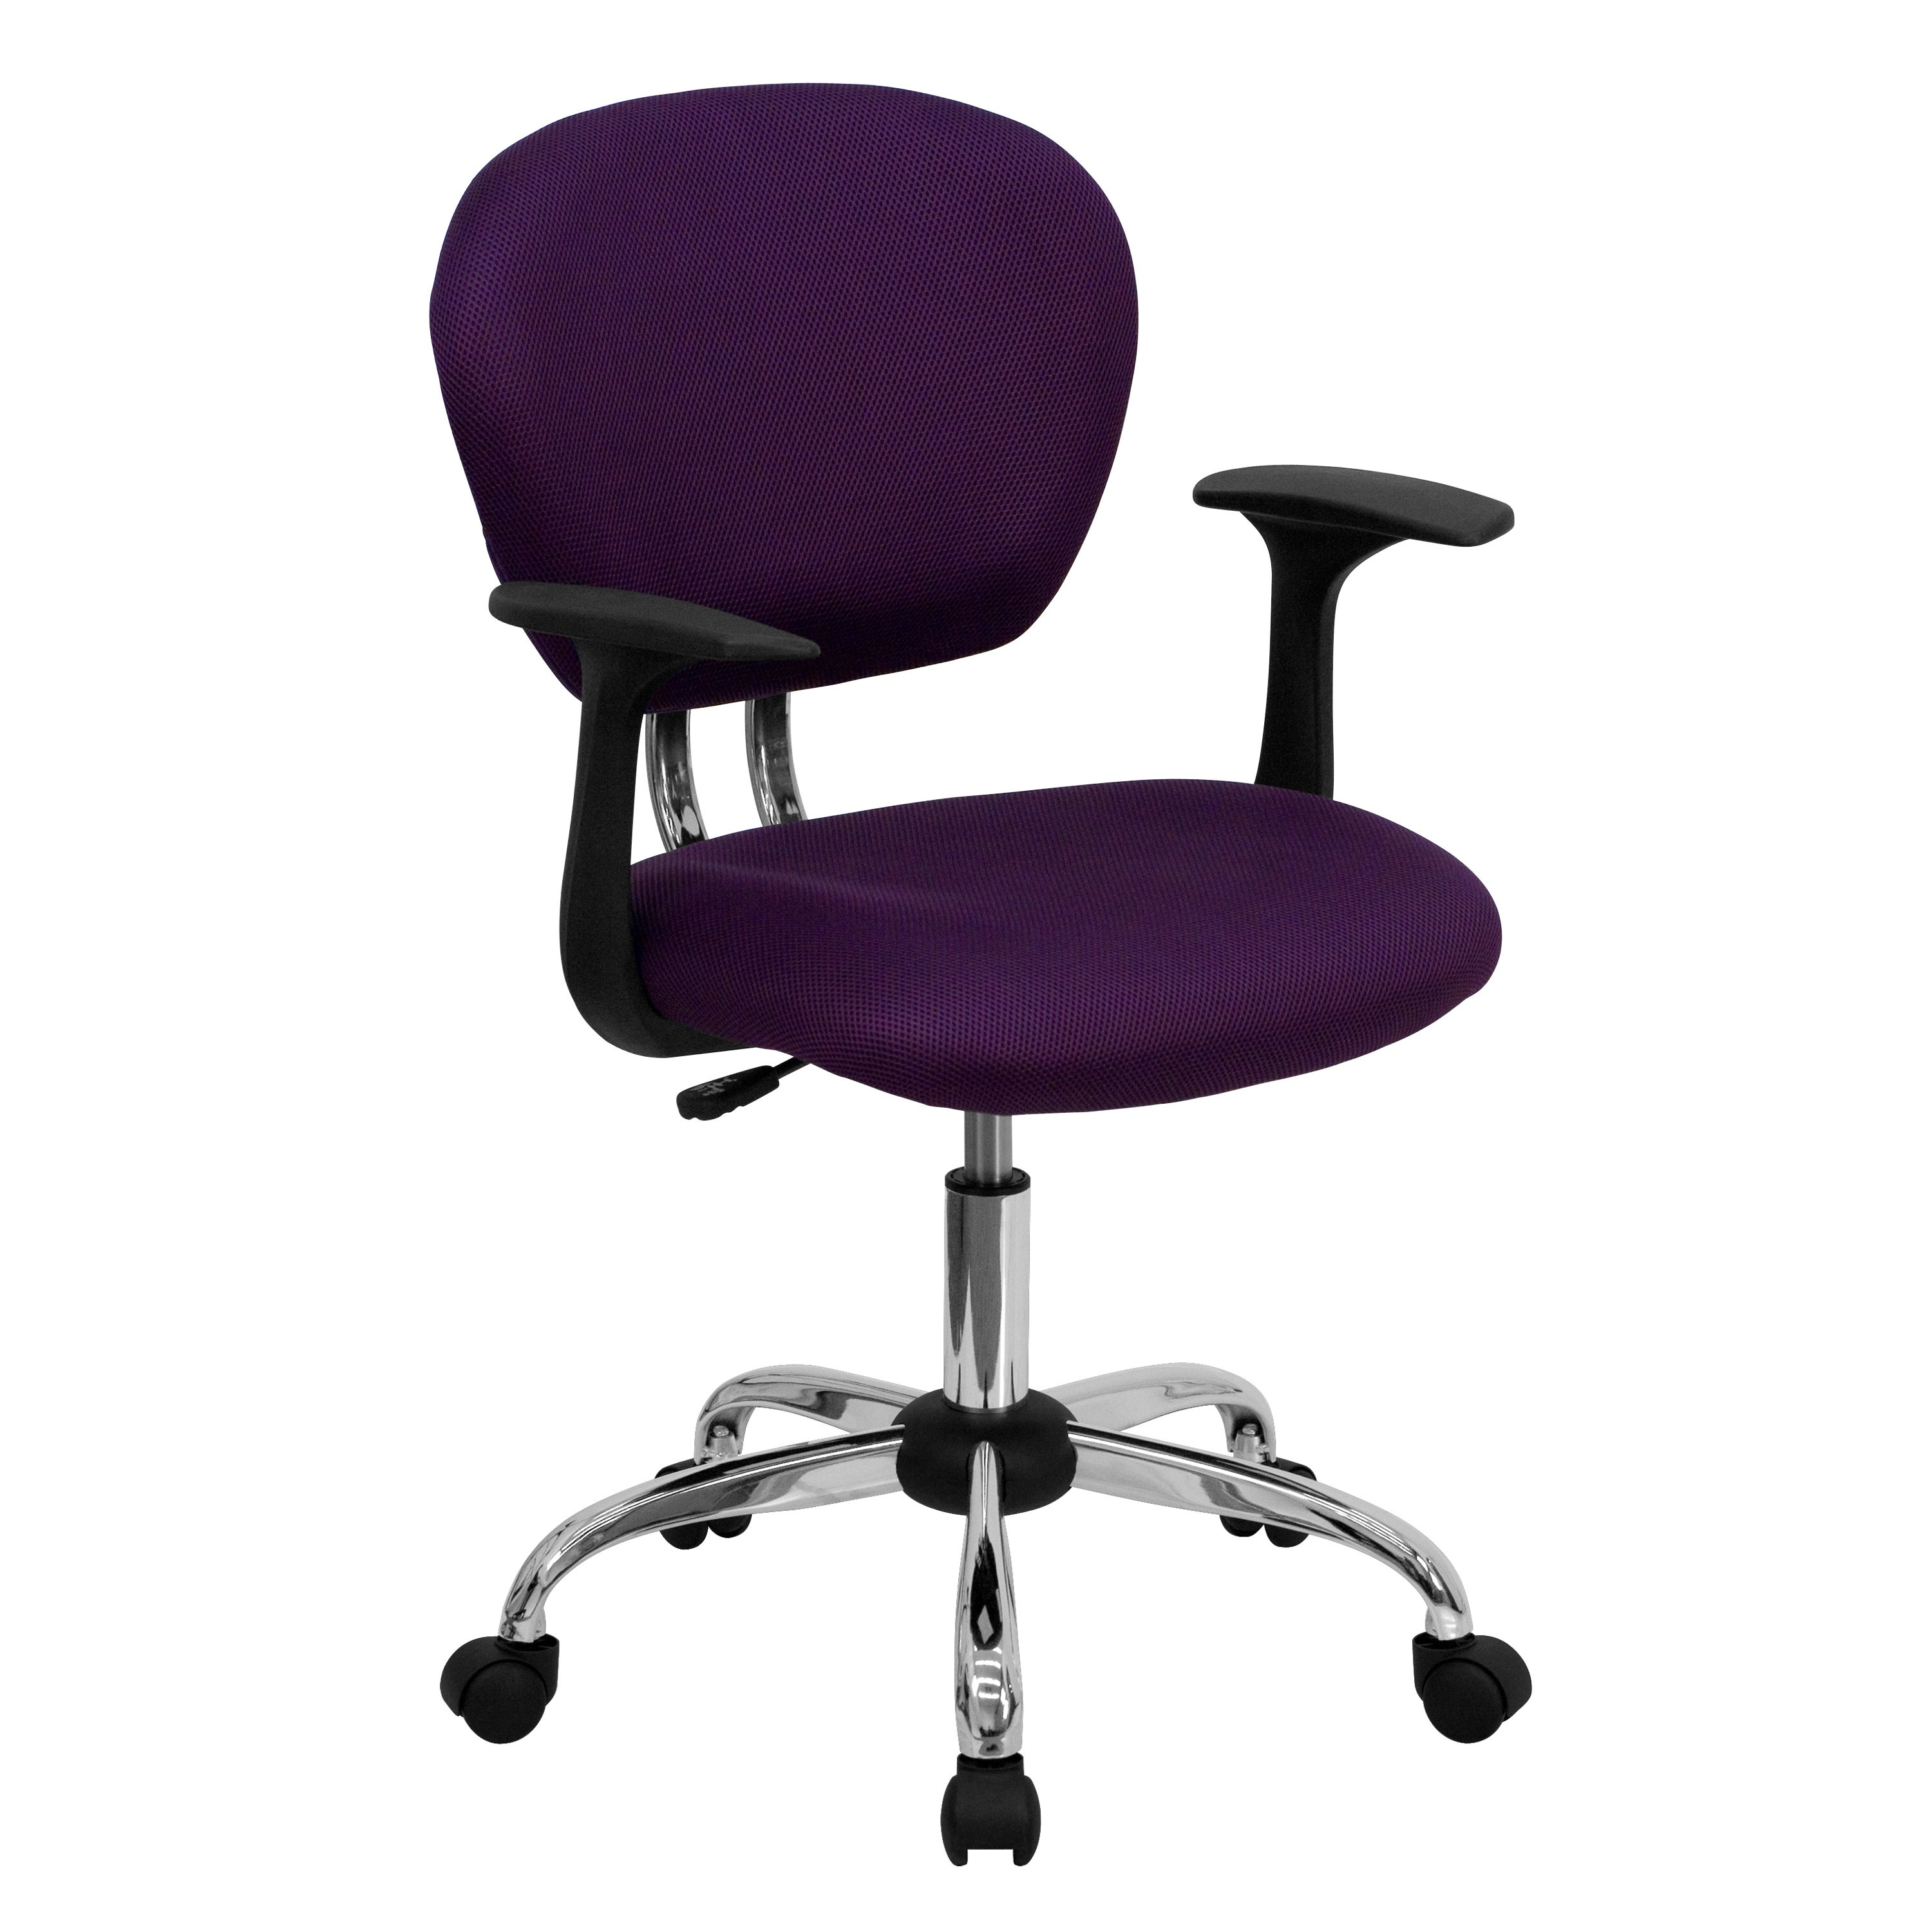 Rigmos Purple Mesh Adjule Swivel Office Chair With Arms And Chrome Base Free Shipping Today 18403532